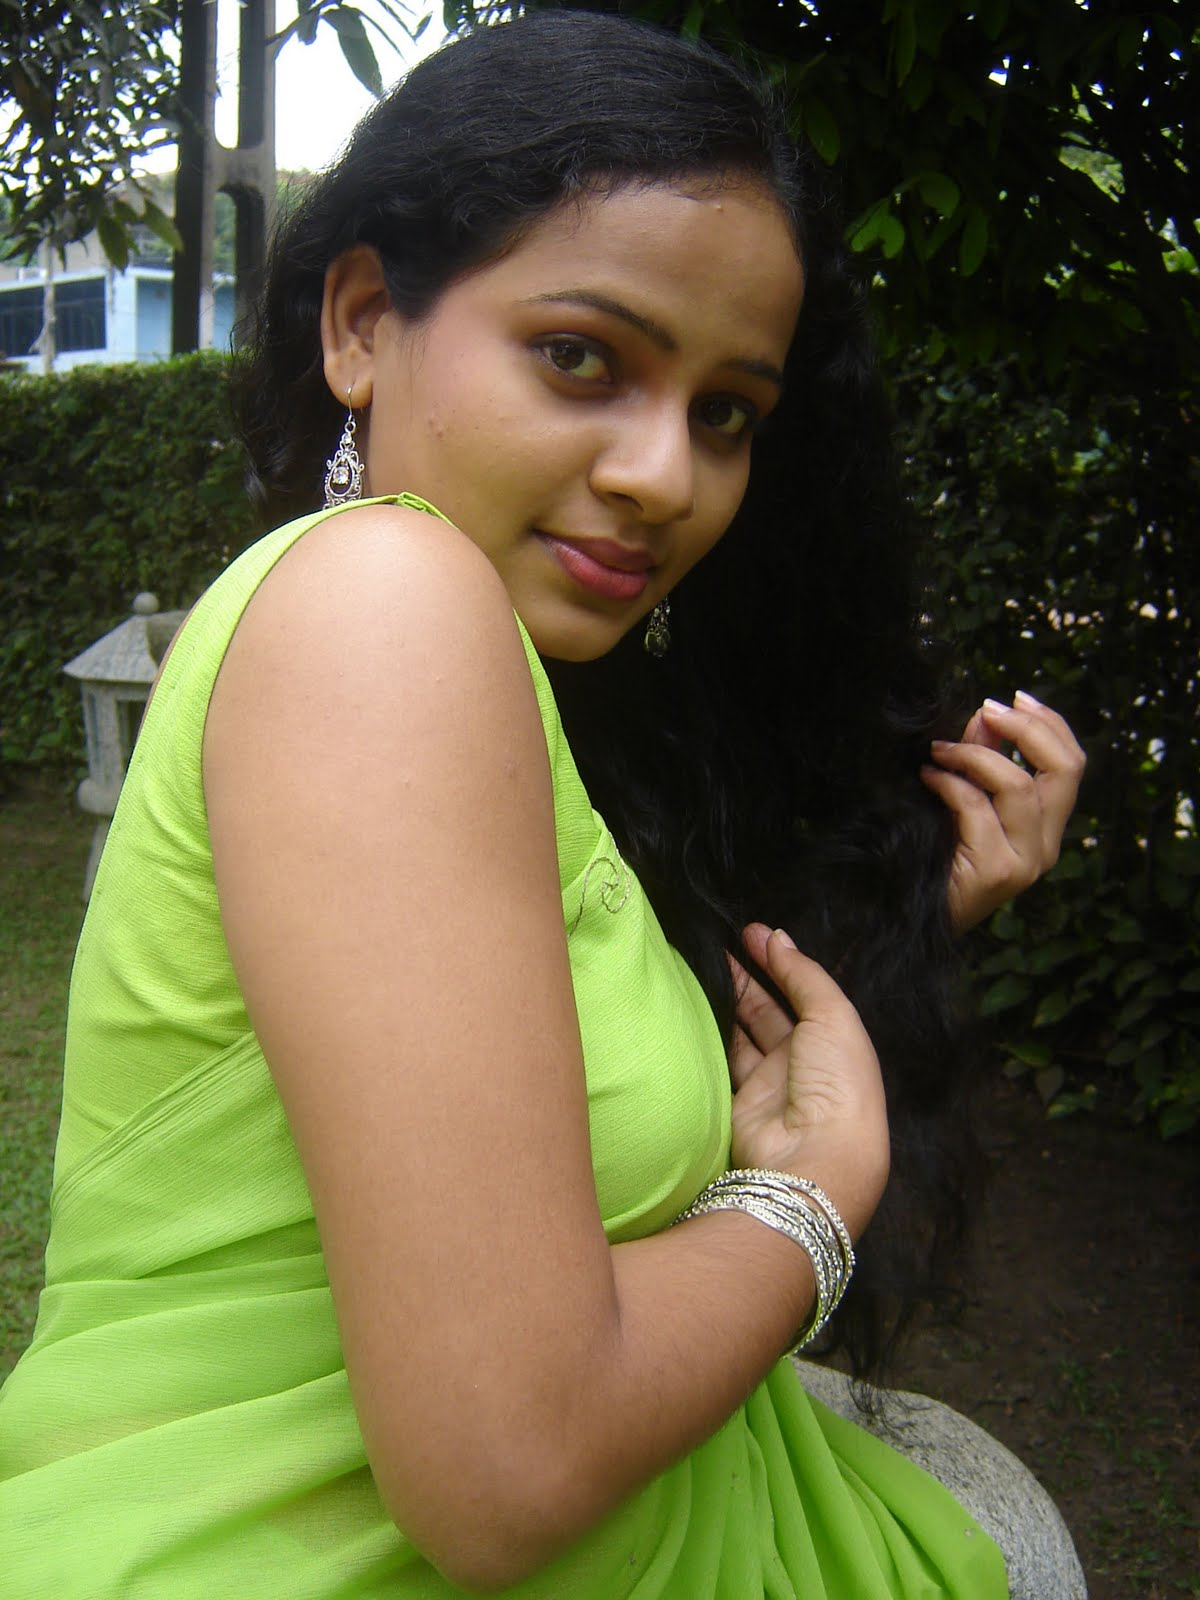 Sinhala nude girls average